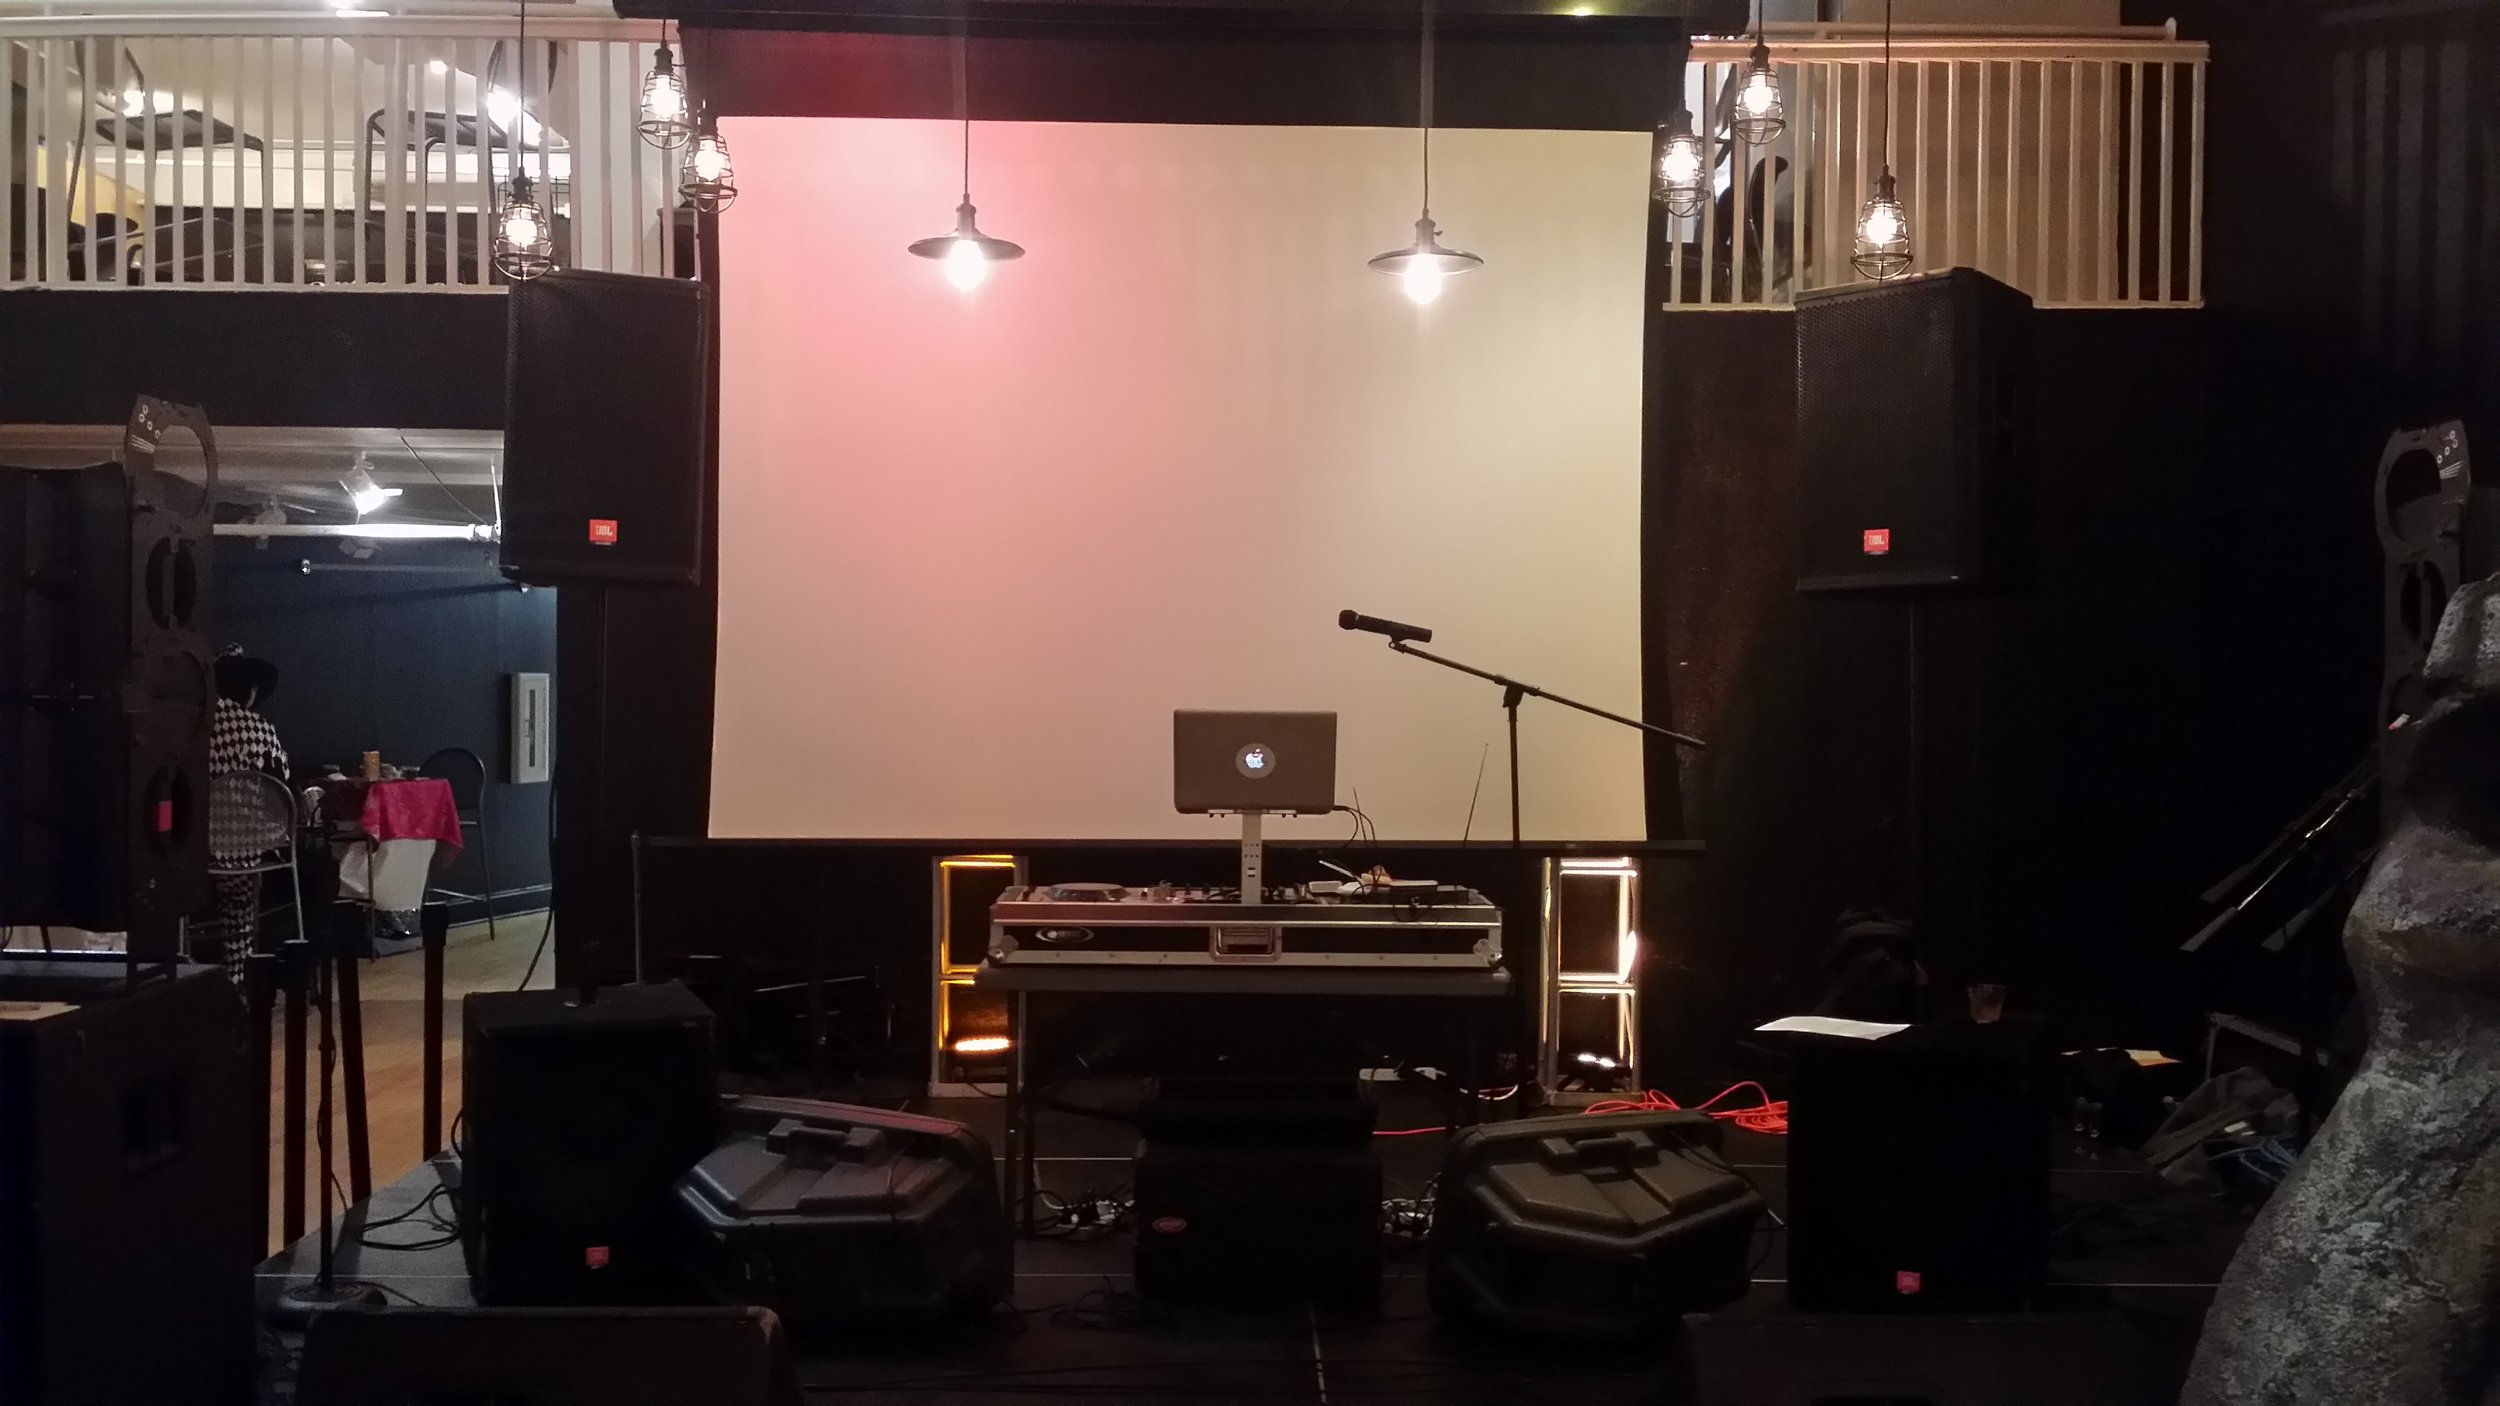 Full DJ Setup! Enough Sound to fill any event!) 4 Speakers plus 2 Monitors , Full DJ Console, Cordless Mic and Projector screen not included.